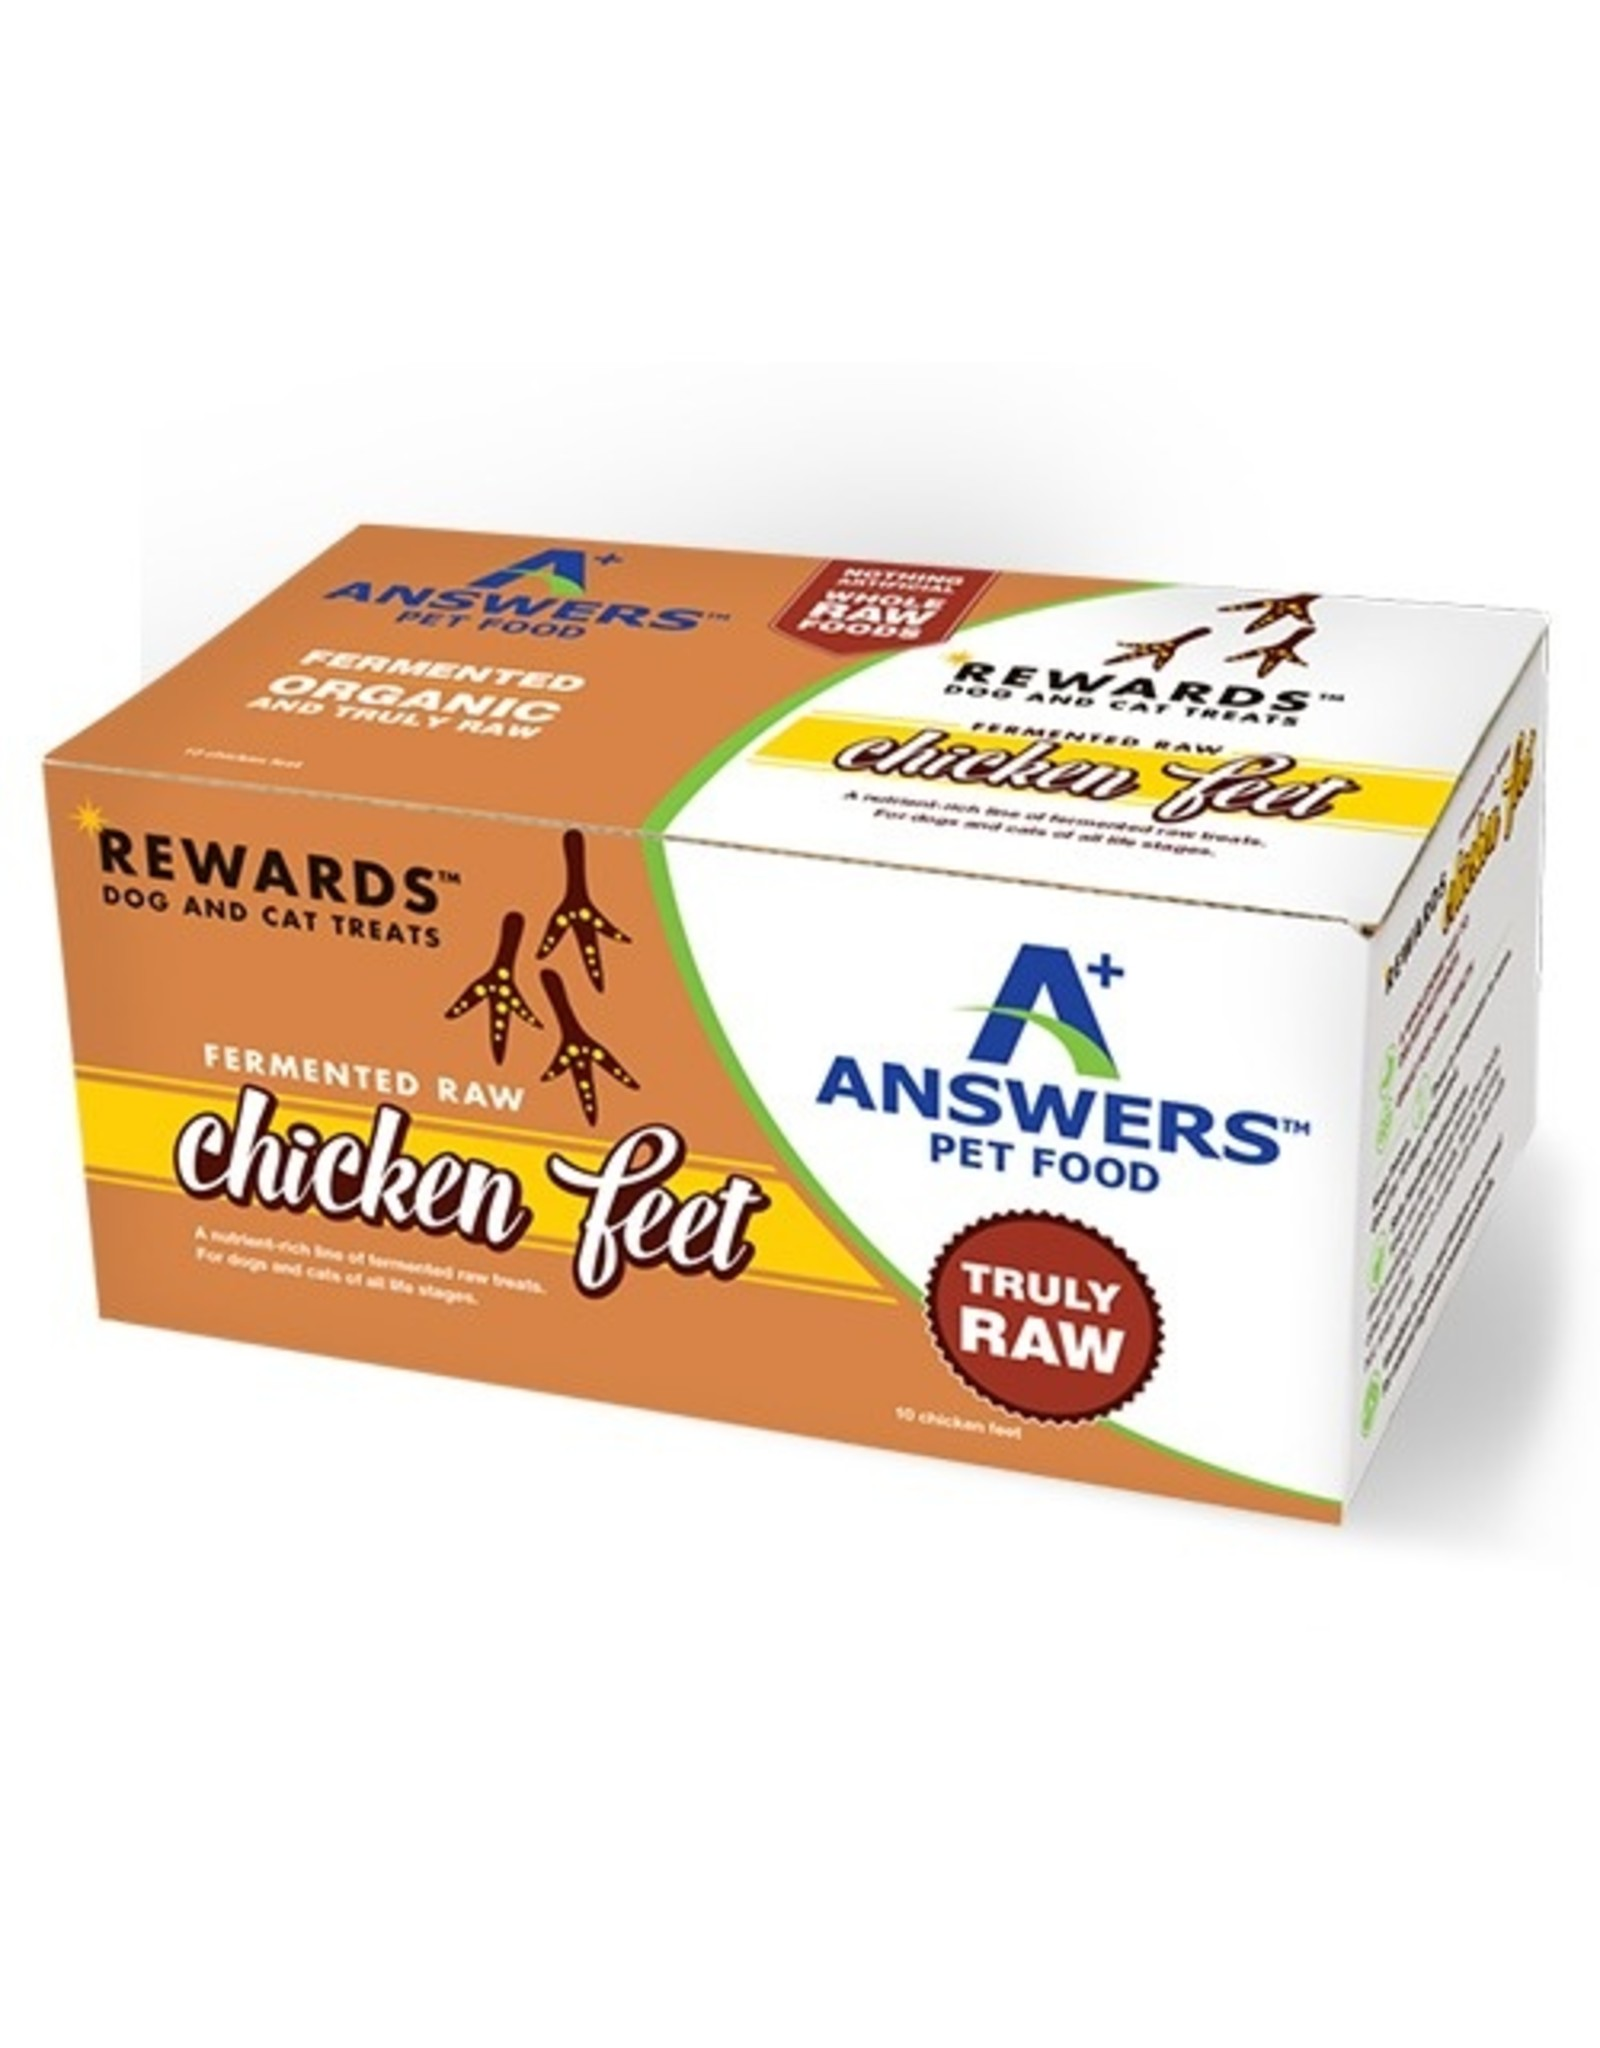 Answers Pet Food Answers Pet Food Raw Fermented Chicken Feet 10ct